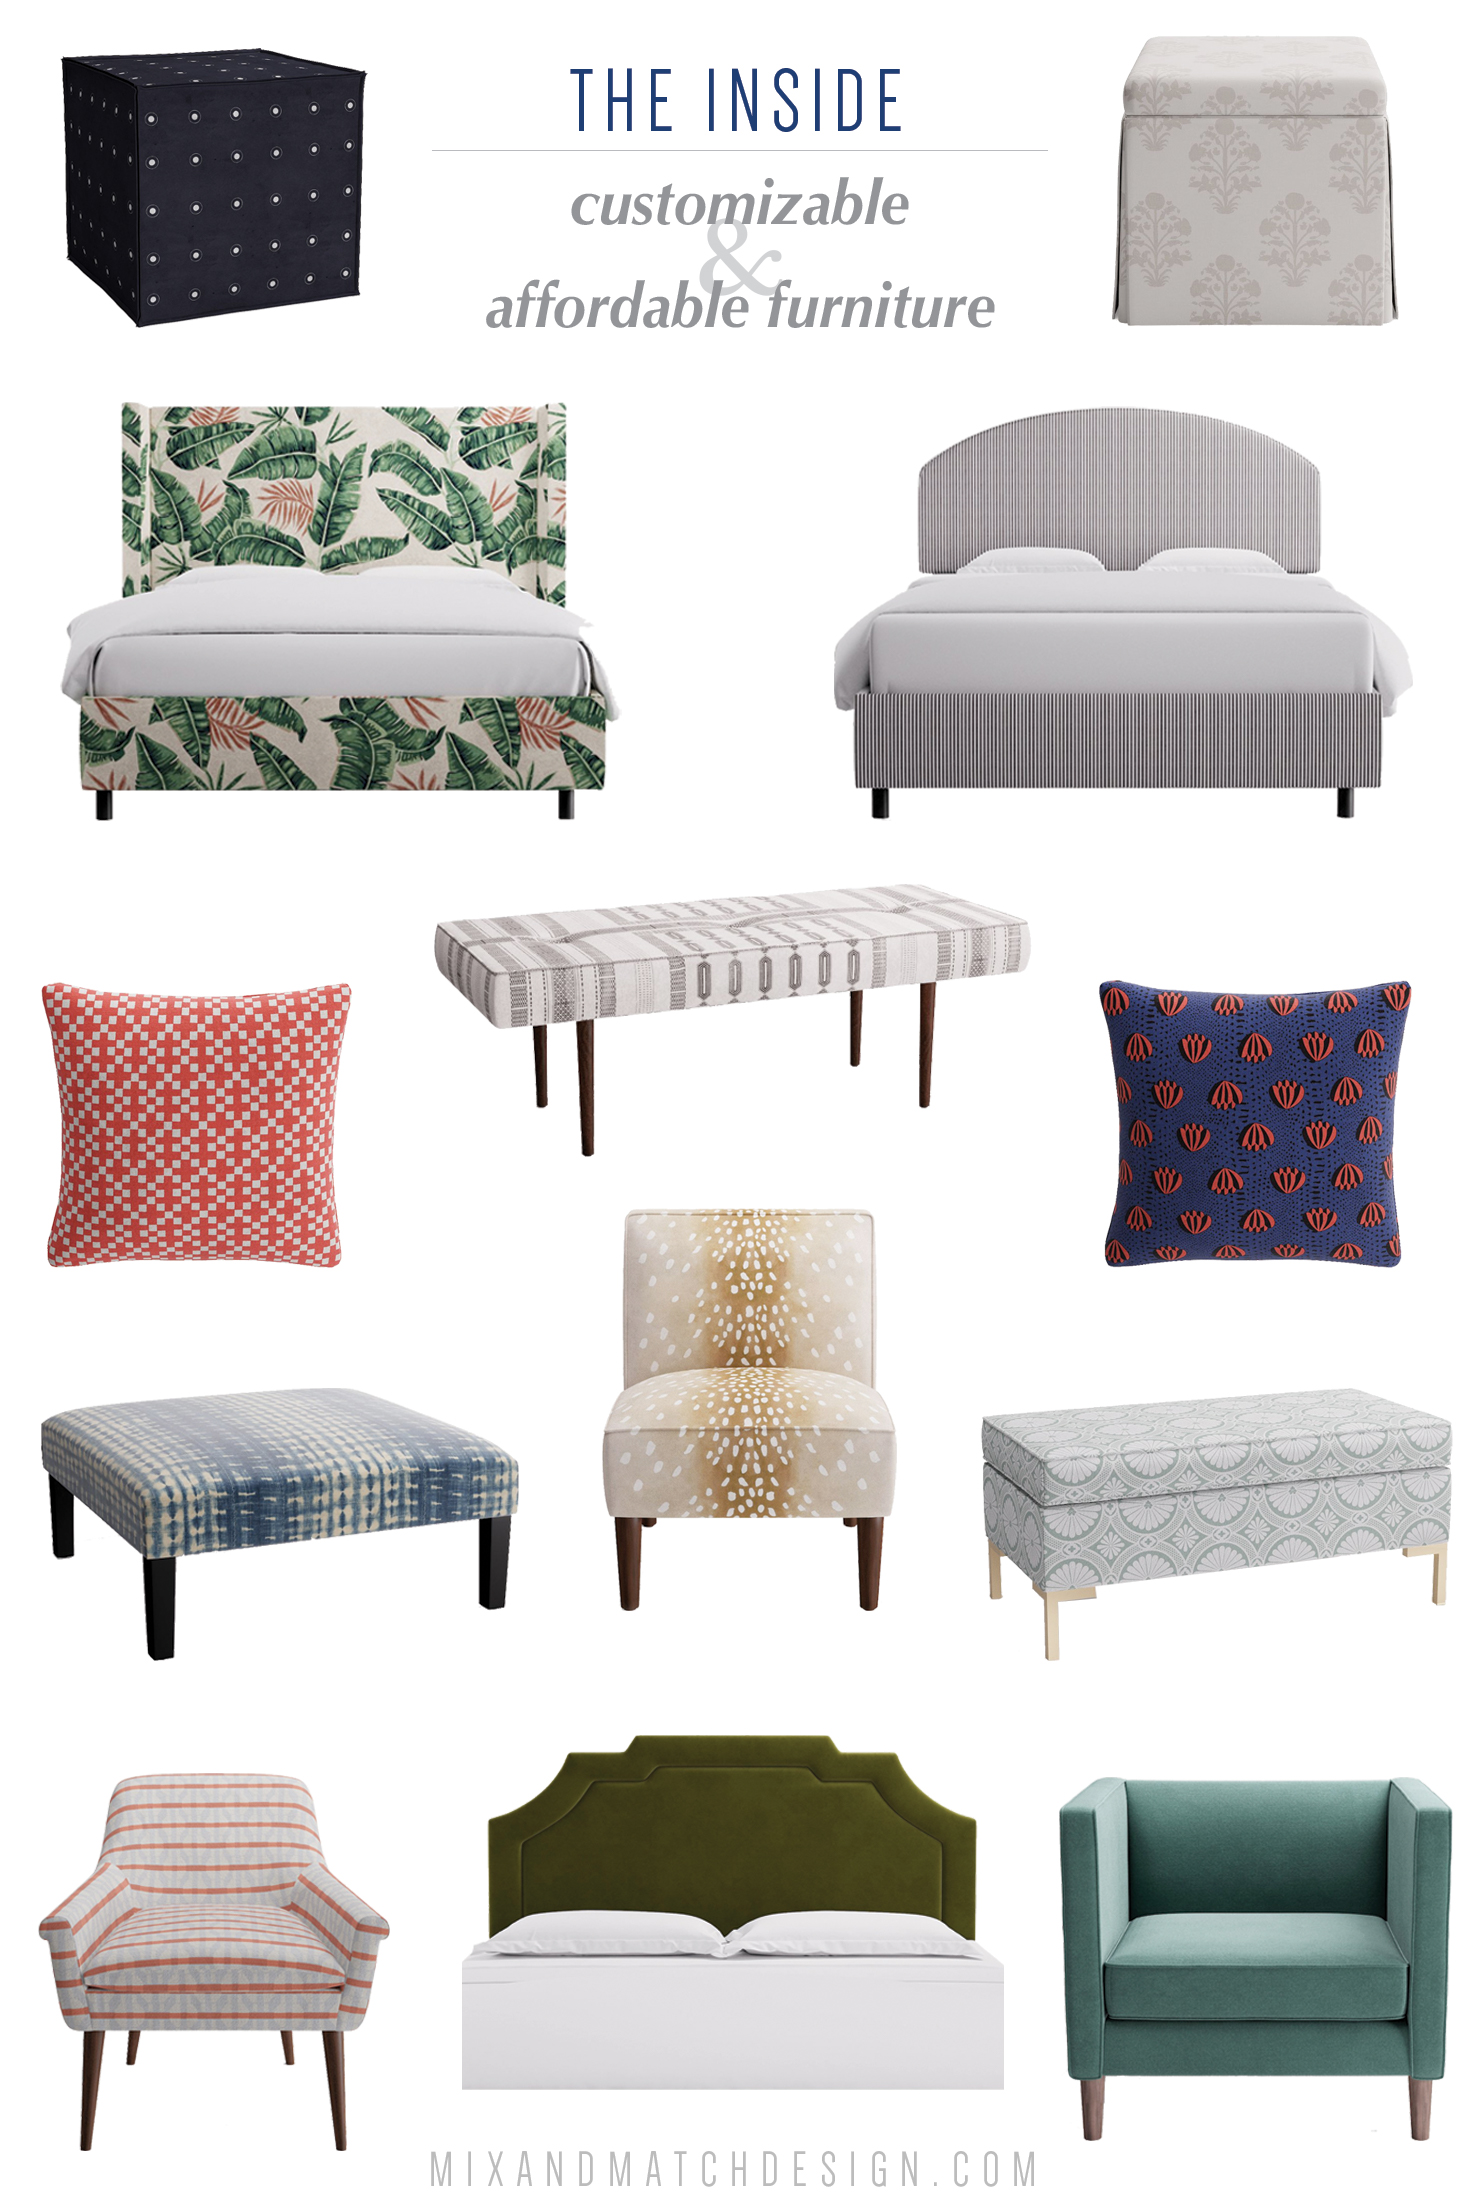 Customized, affordable furniture in beautiful fabrics from The Inside. Find beds, chairs, ottomans, pillows, and more in a huge variety of fabrics. The Inside offers new fabrics every month and quick (and free!) shipping on every order.